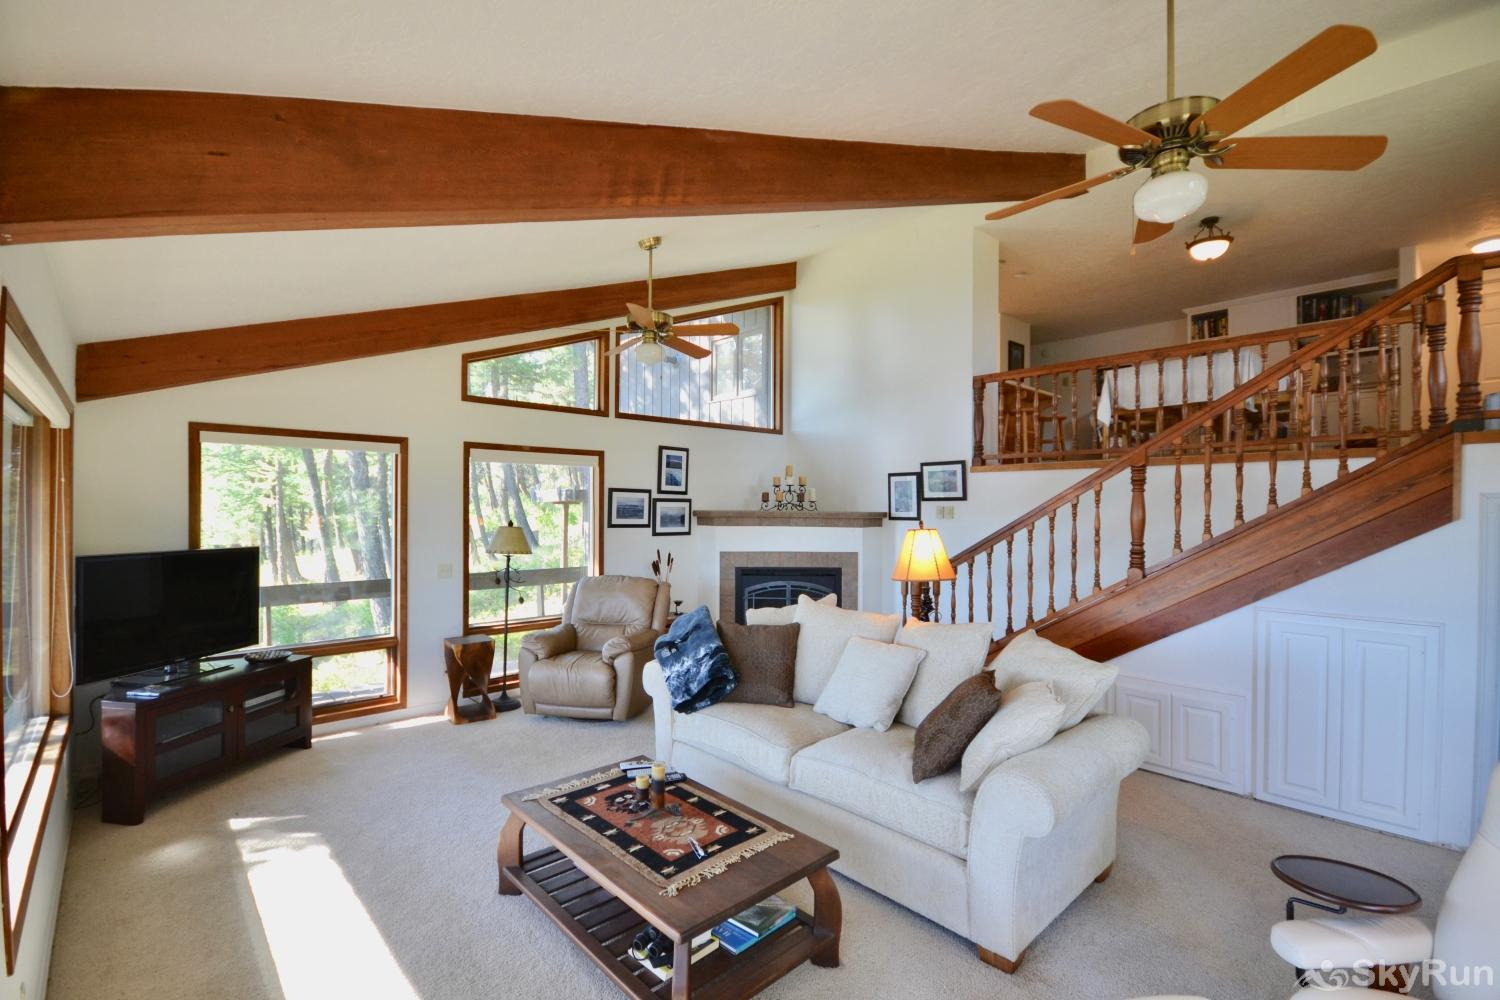 Lodgepole Ridge Cottage Spacious and comfortable with million dollar views.